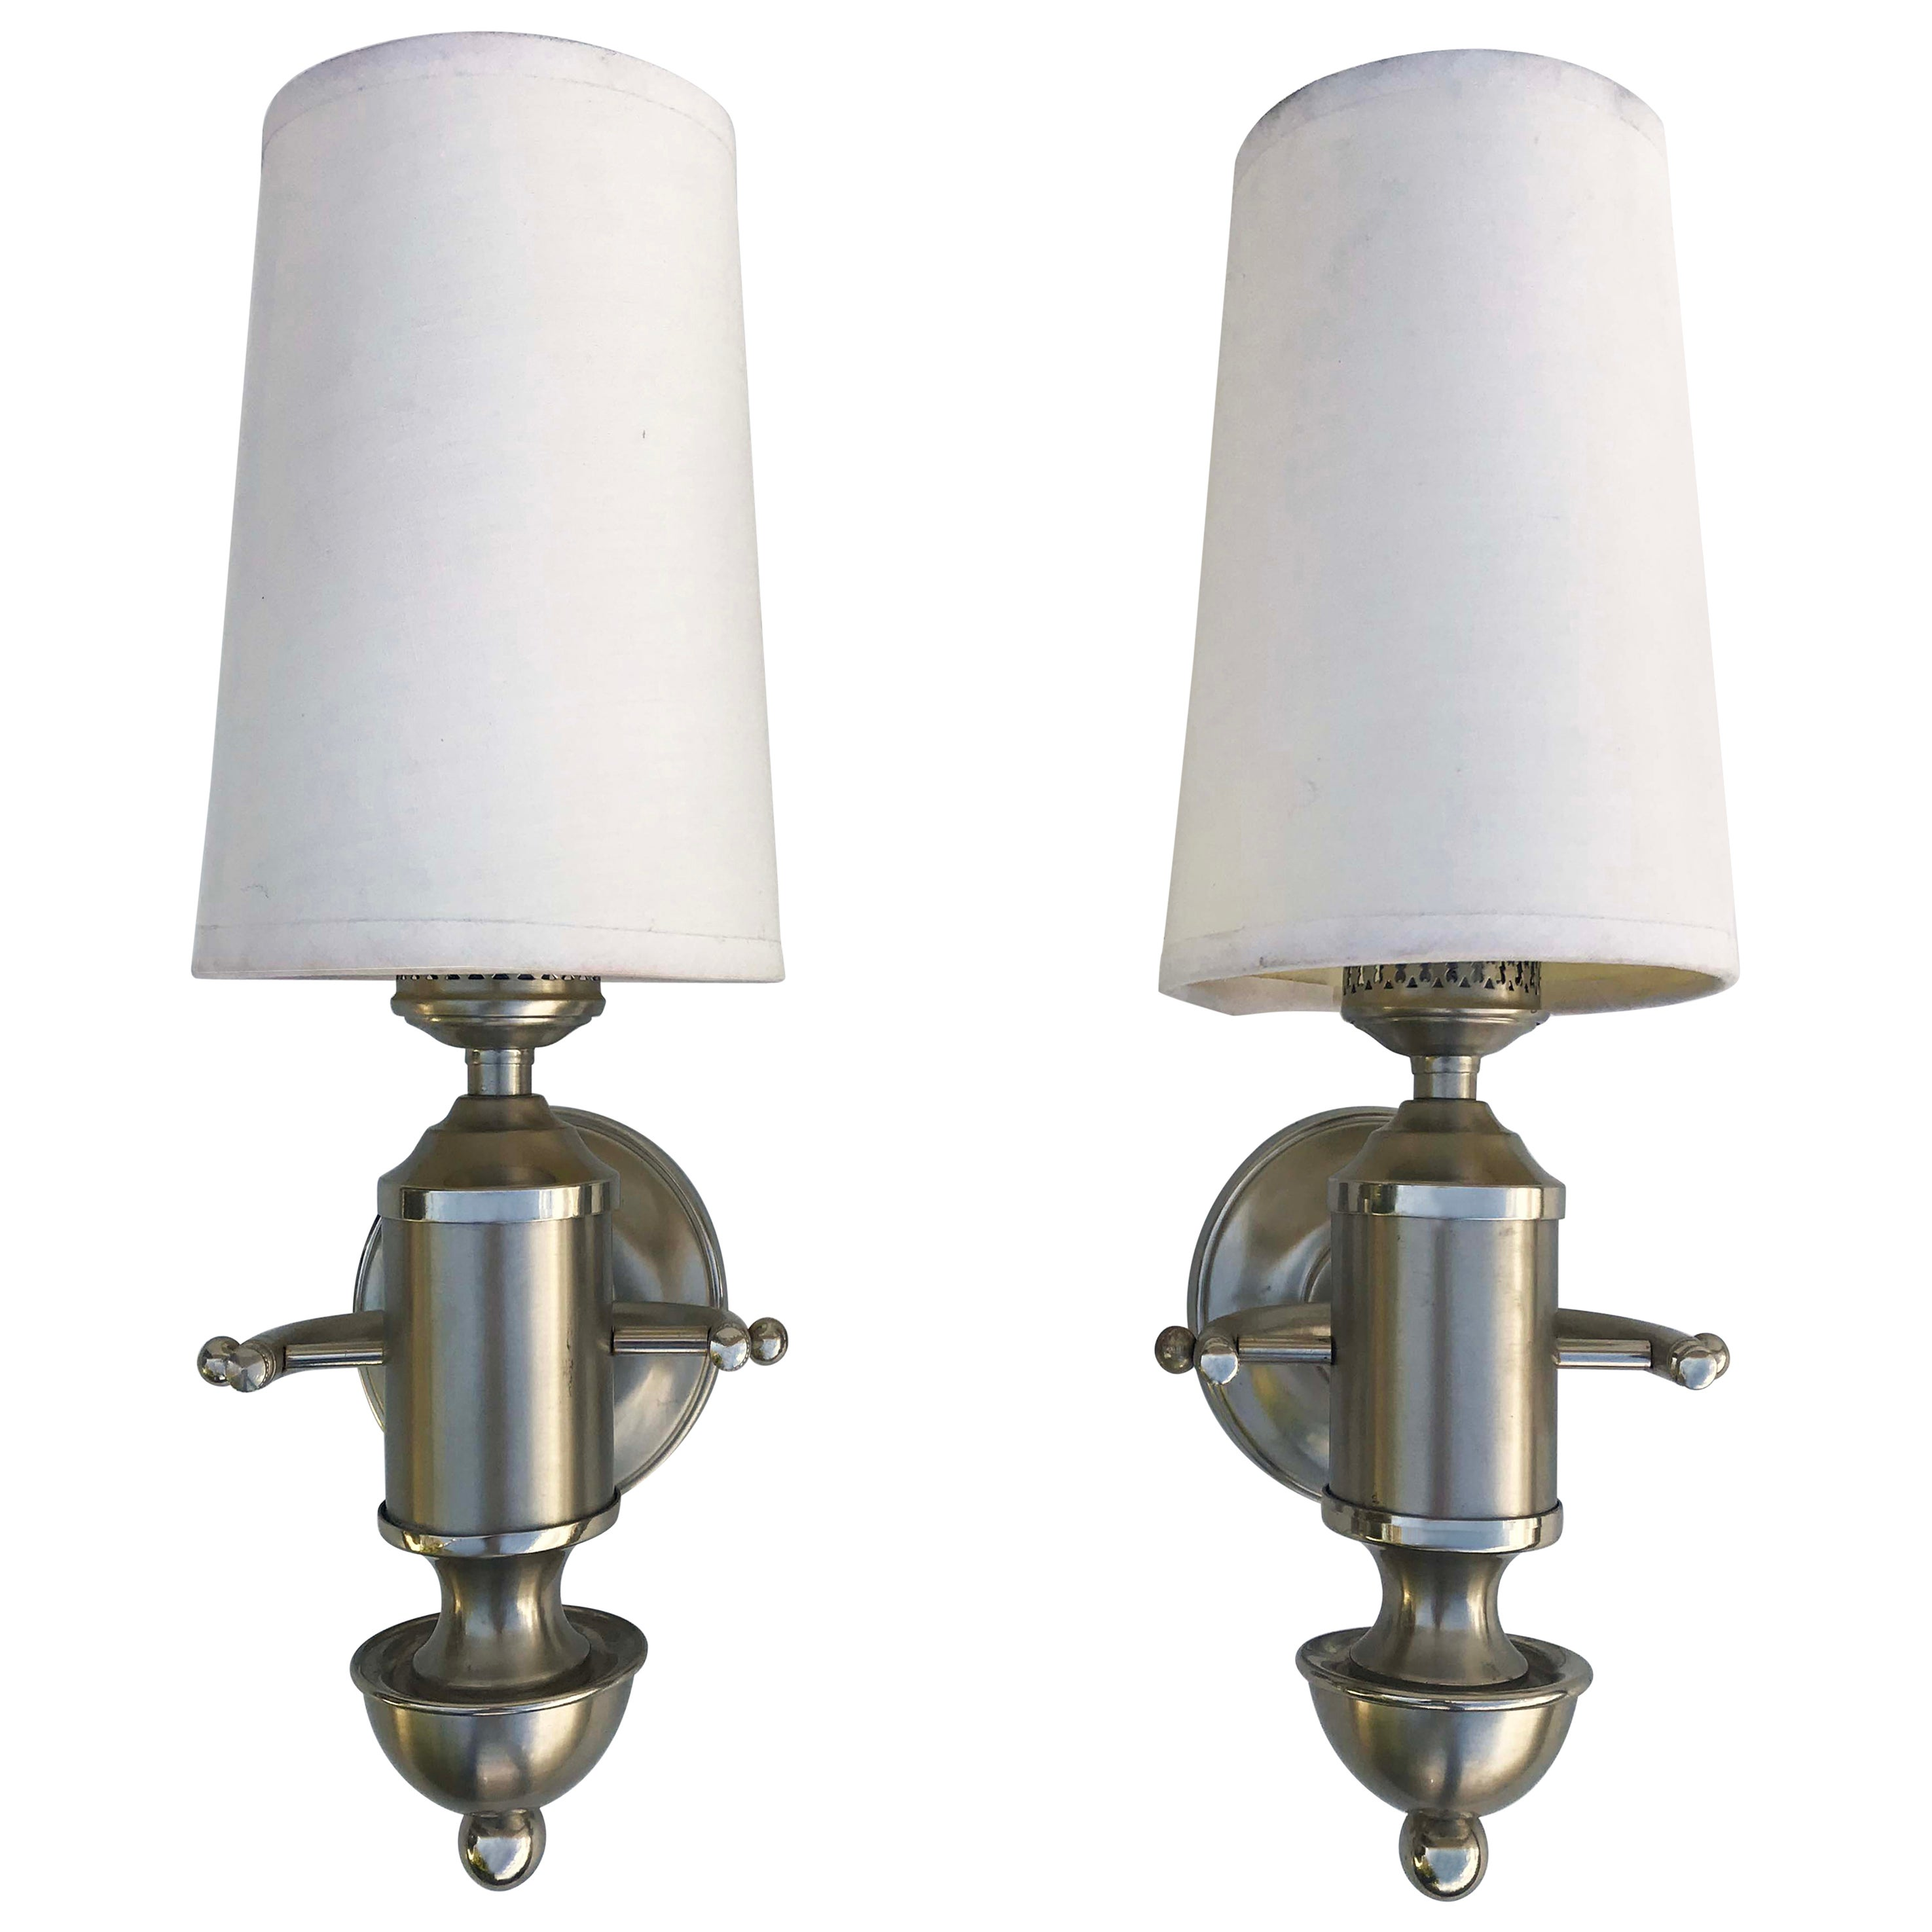 Signed Maison Charles Pair of Nautical  Sconces